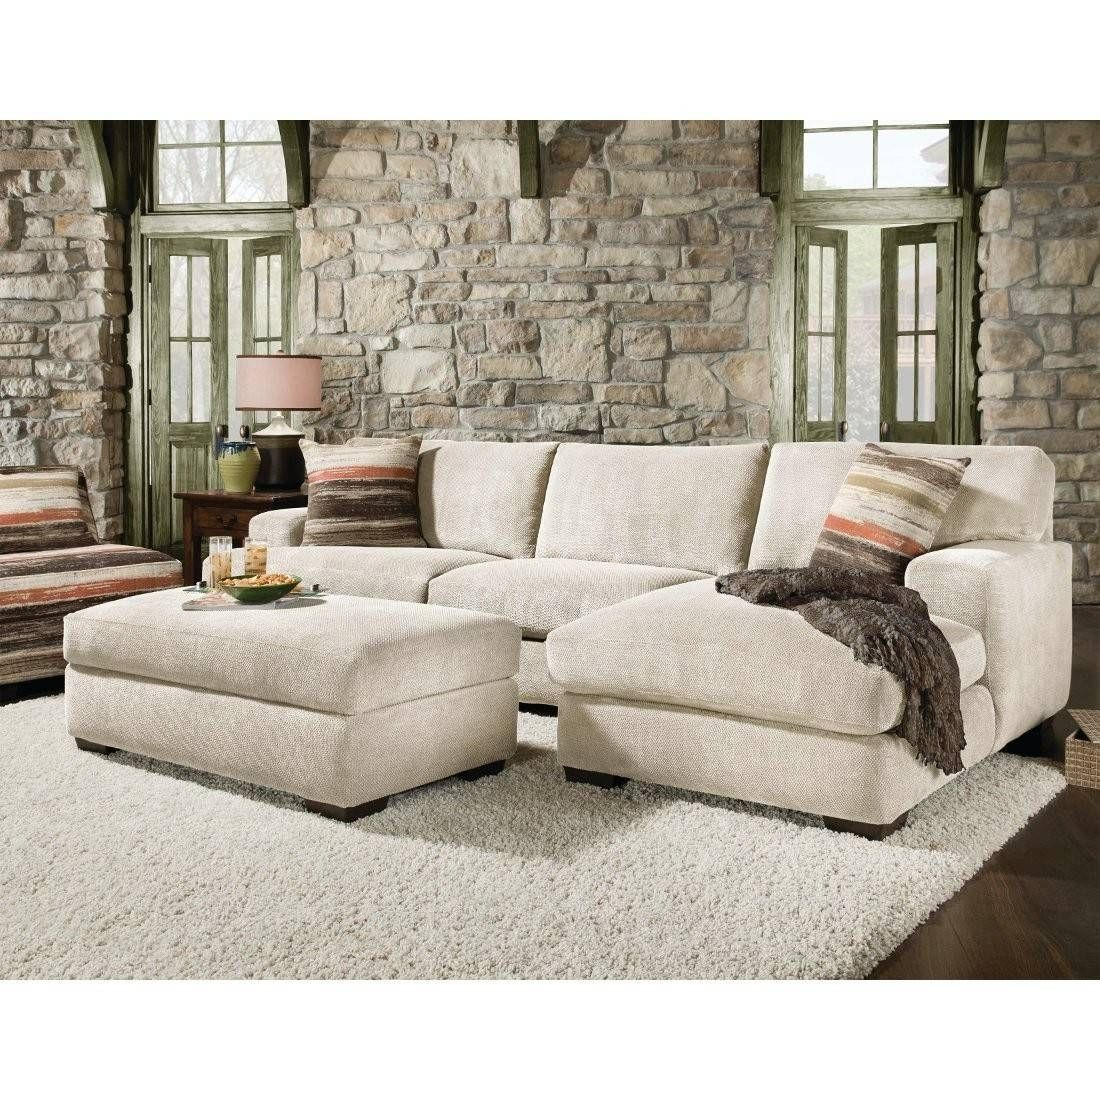 Scaled Down Sectional Sofas Check More At Https Homefurnitureone